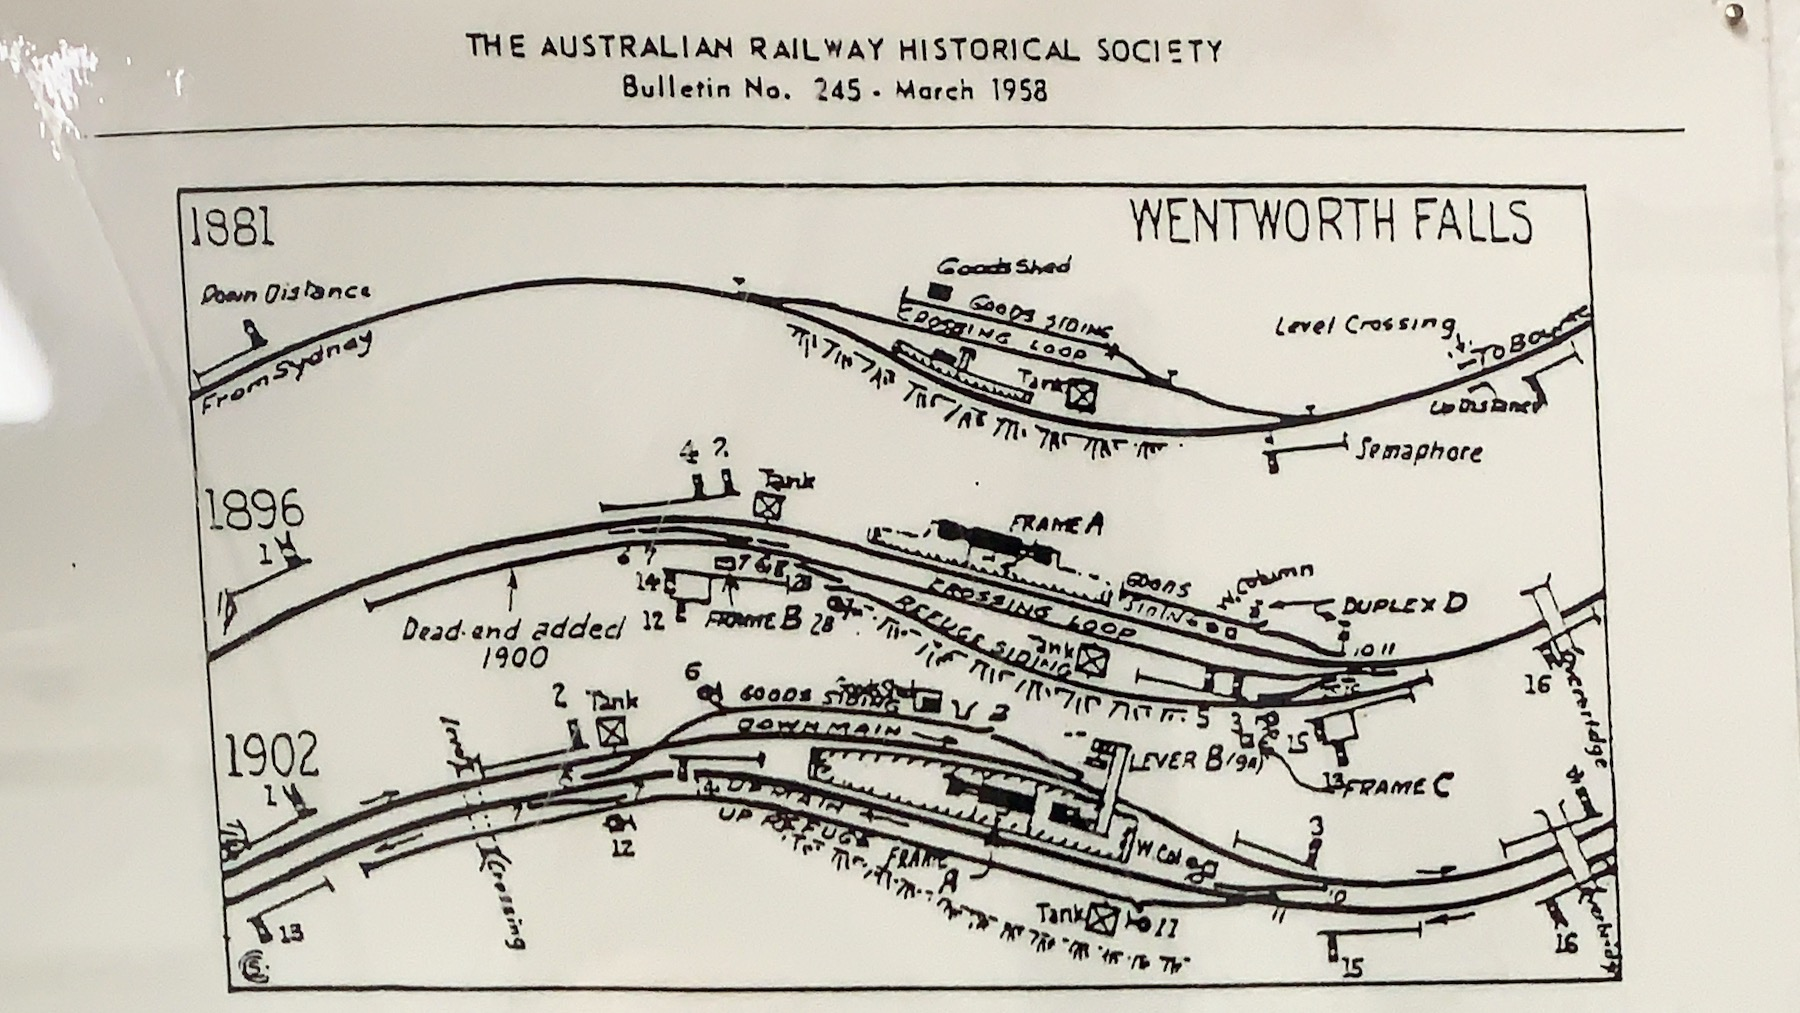 Wentworth Falls station track layouts